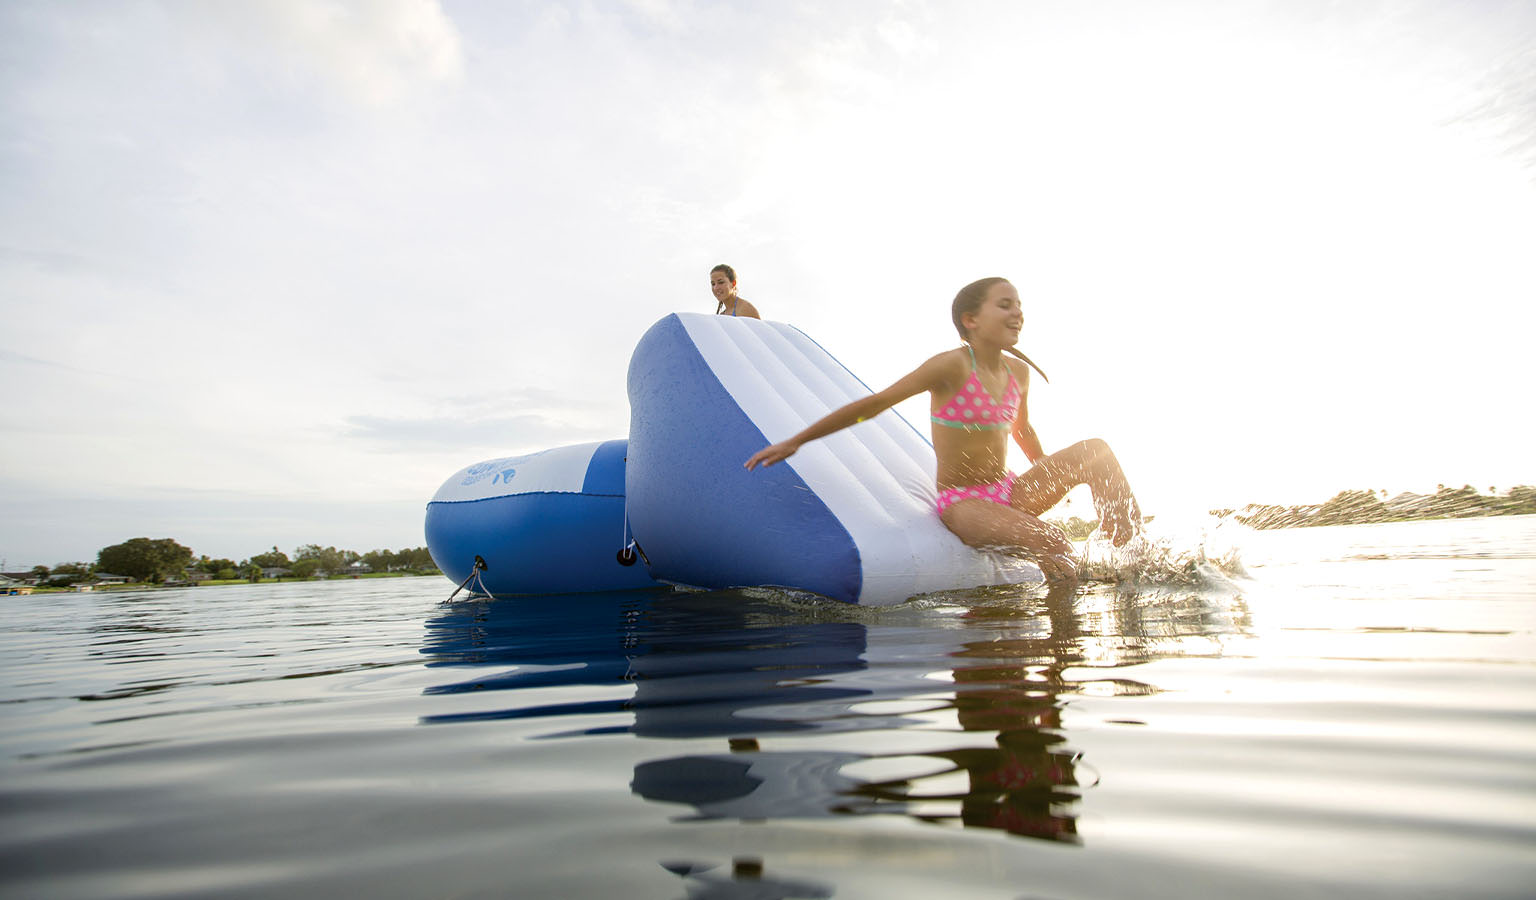 Up to $150 off Trampolines, Bouncers, Lake & Pool Floats & More